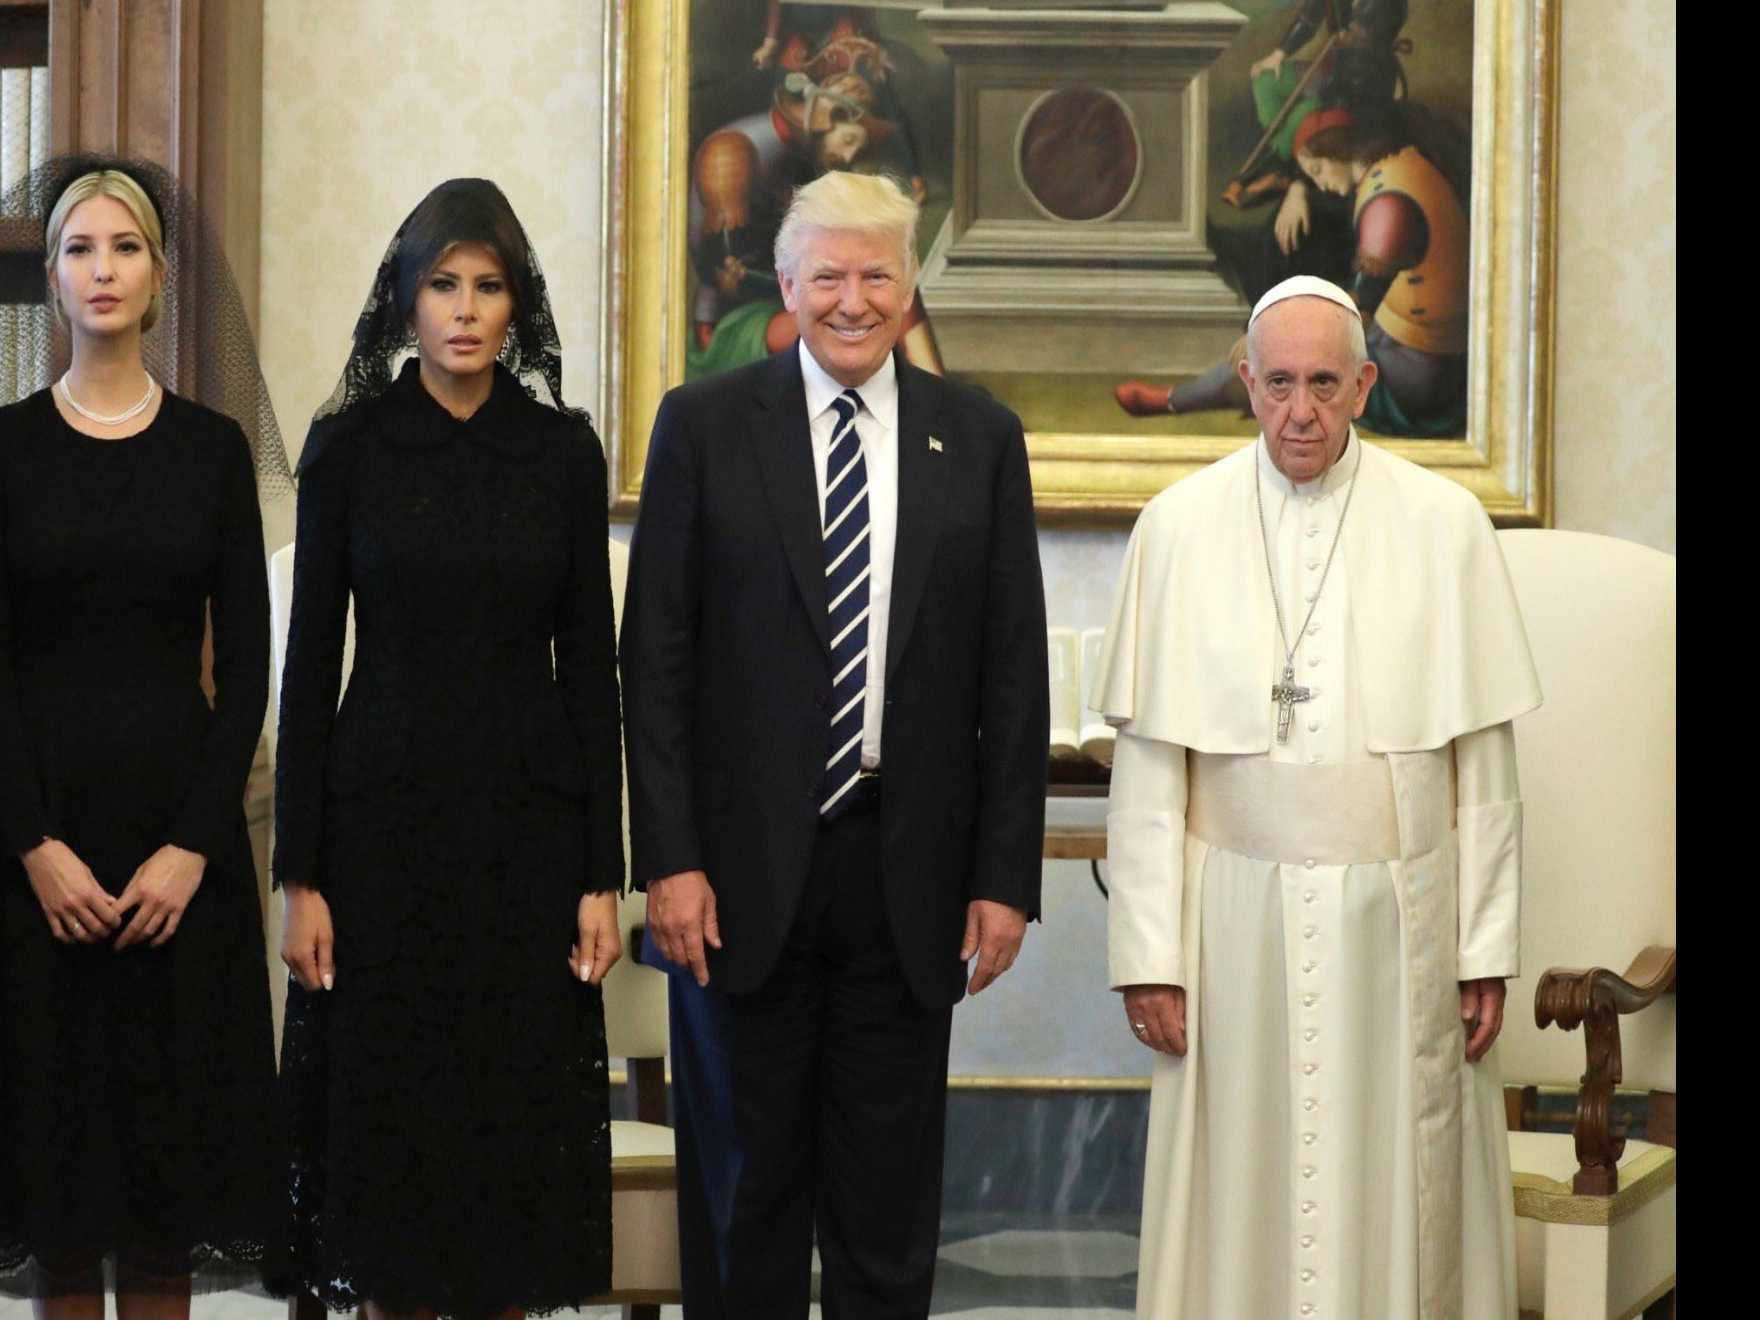 Dumb-Ass Lists: EDGE's Top 10 Favorite Trumps Invade The Vatican Tweets